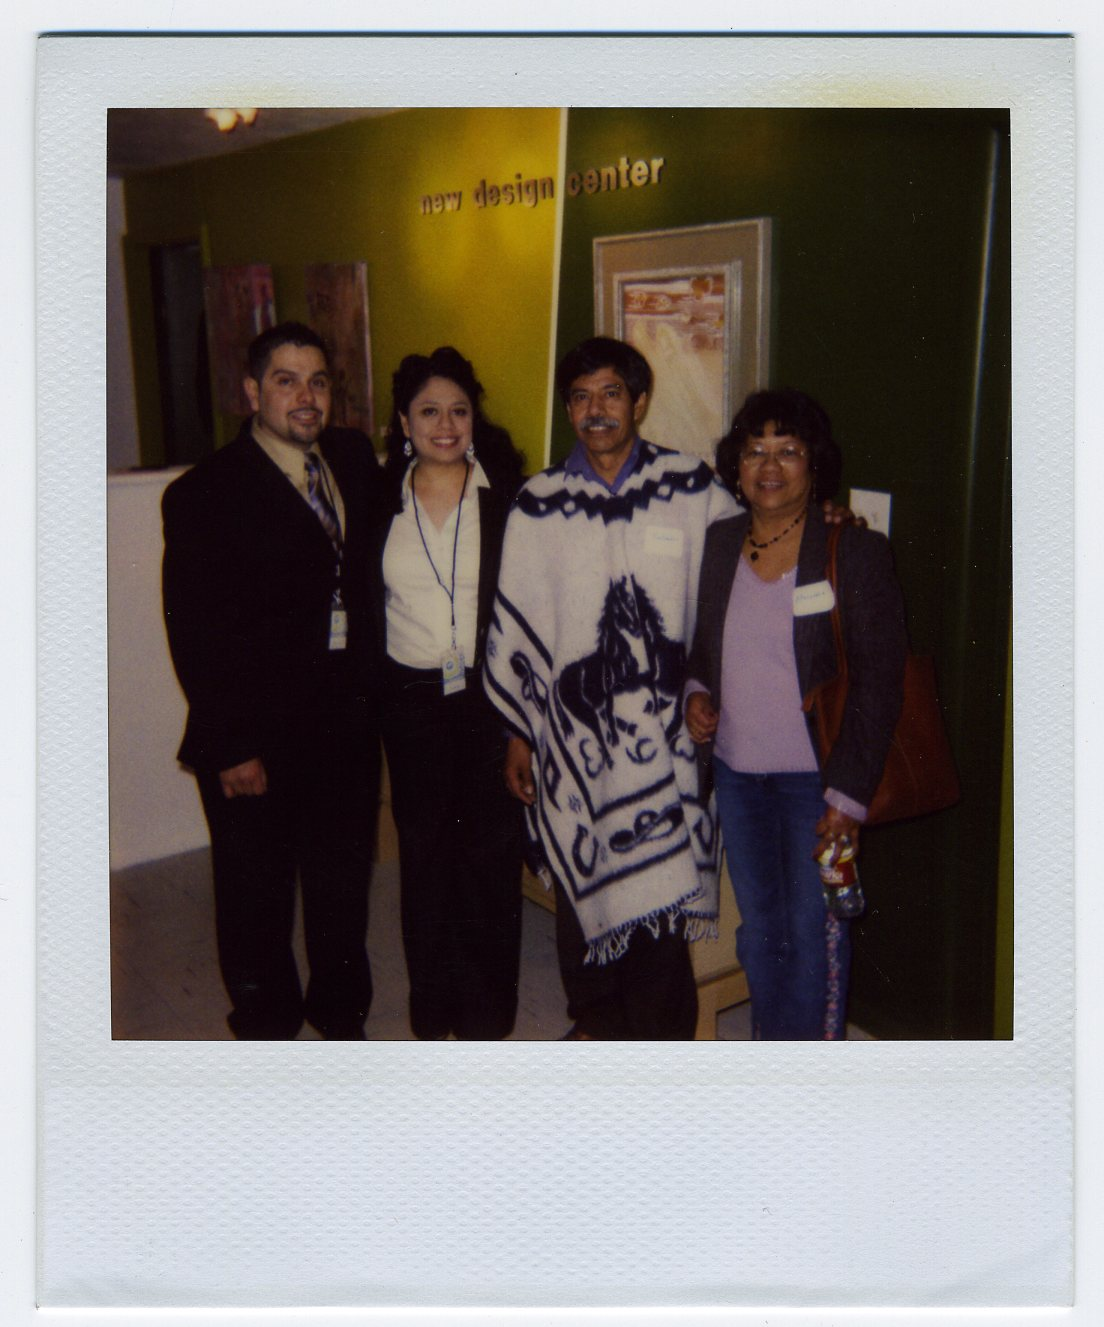 2007, New Design Center (before we were a licensed school) First Home Celebration at 572 (then West 6th St.) Martin Luther King Jr. Blvd.  From left to right: Marcos, Sonia, Salvador and Mercedes Gutierrez